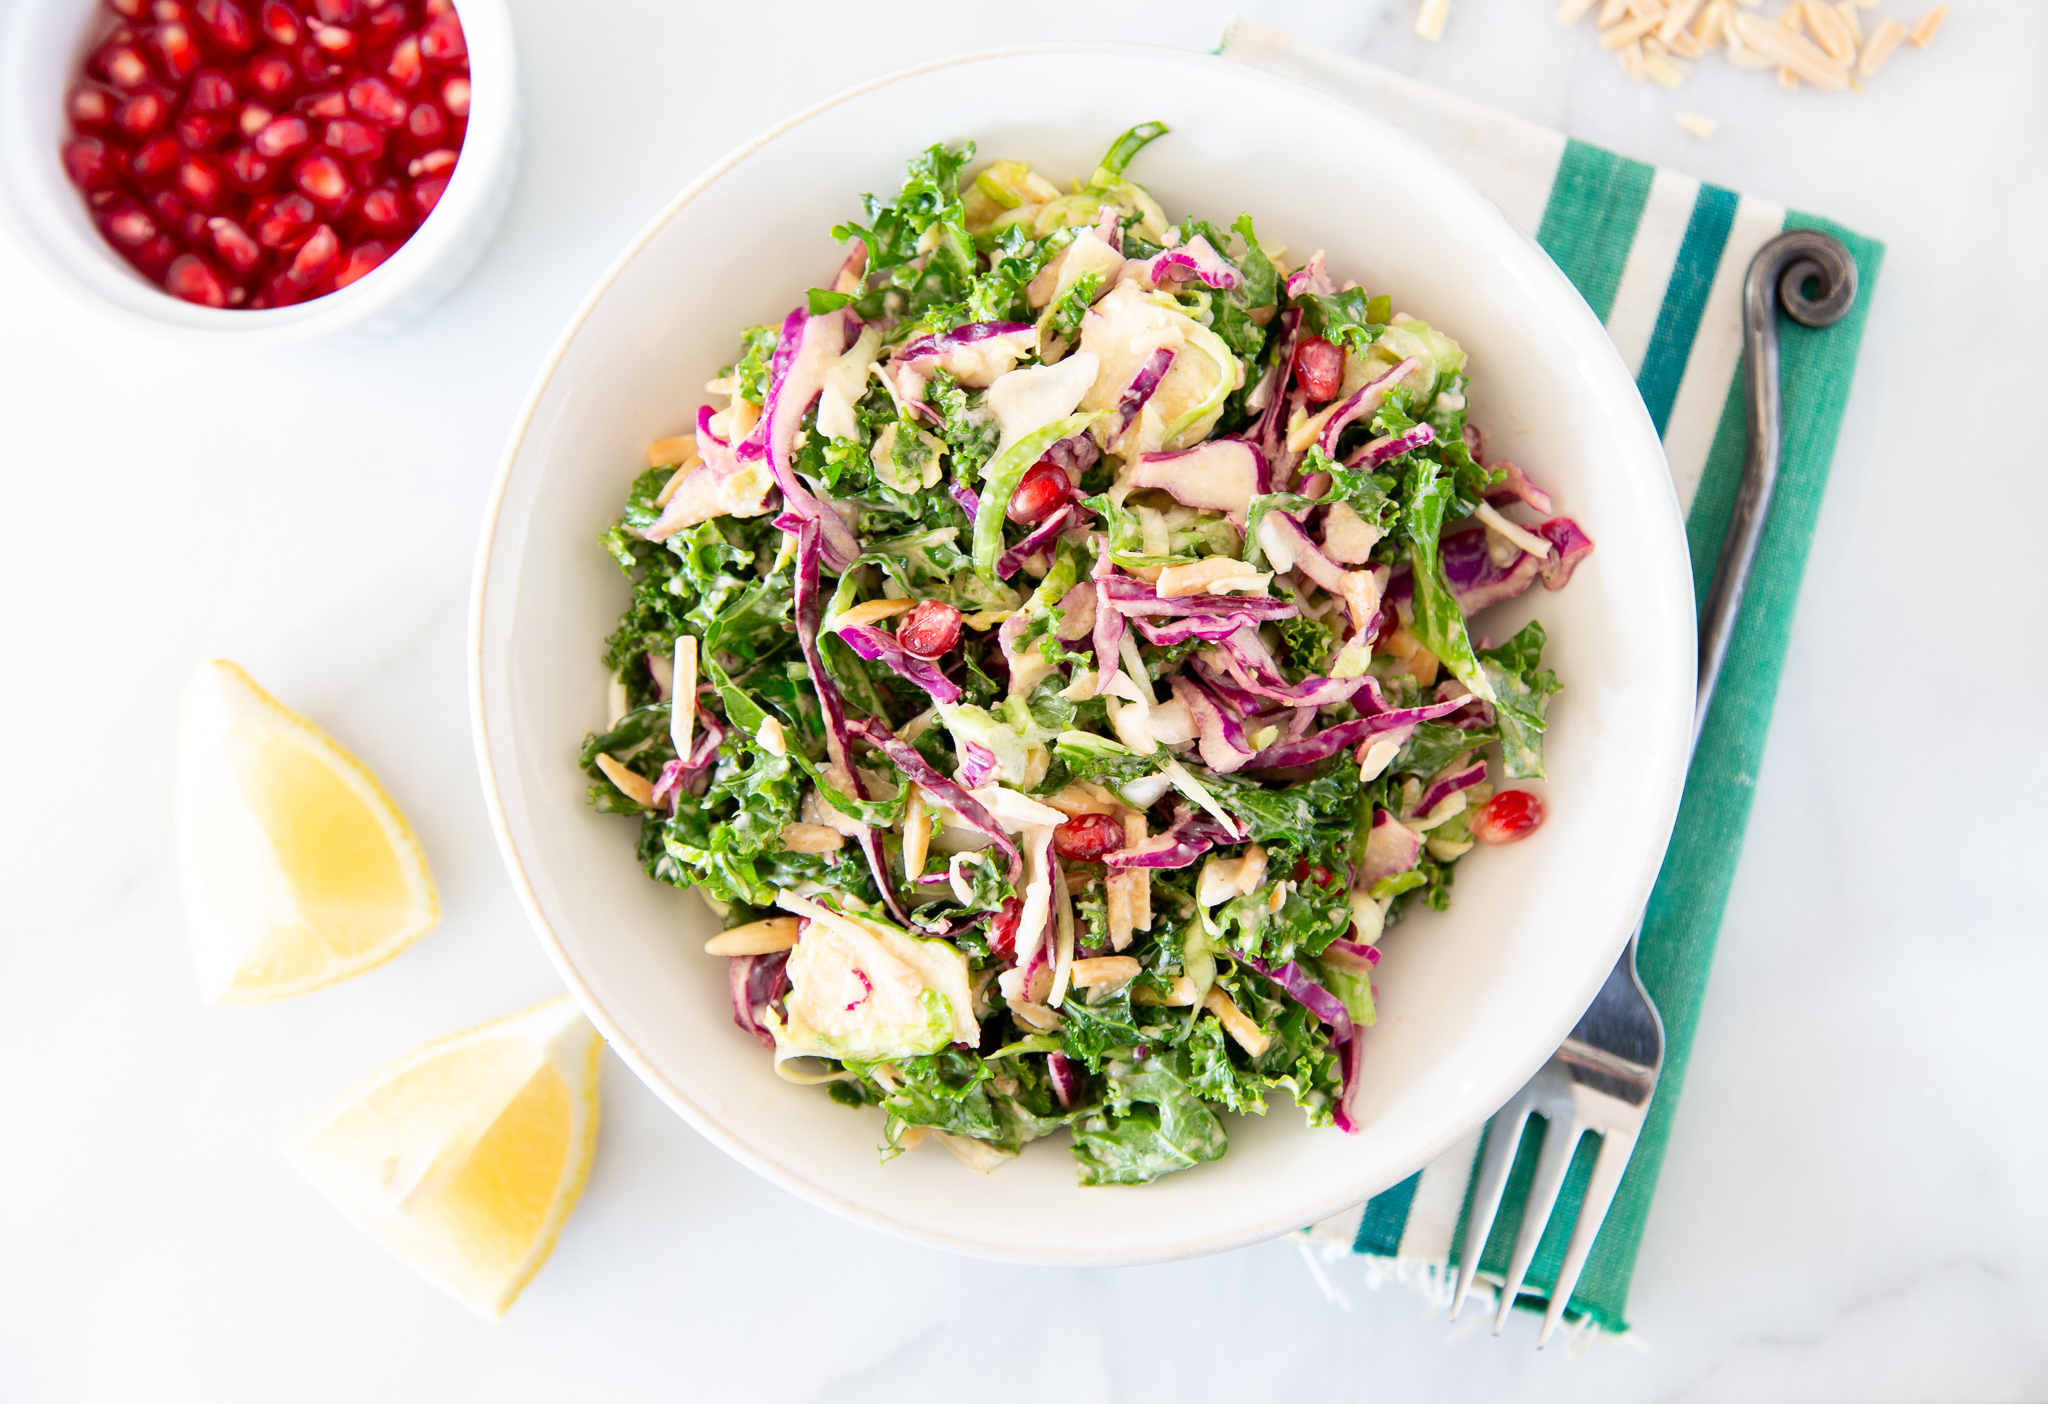 A Festive Kale and Brussels Sprouts Salad With Almonds & Pomegranate Seeds